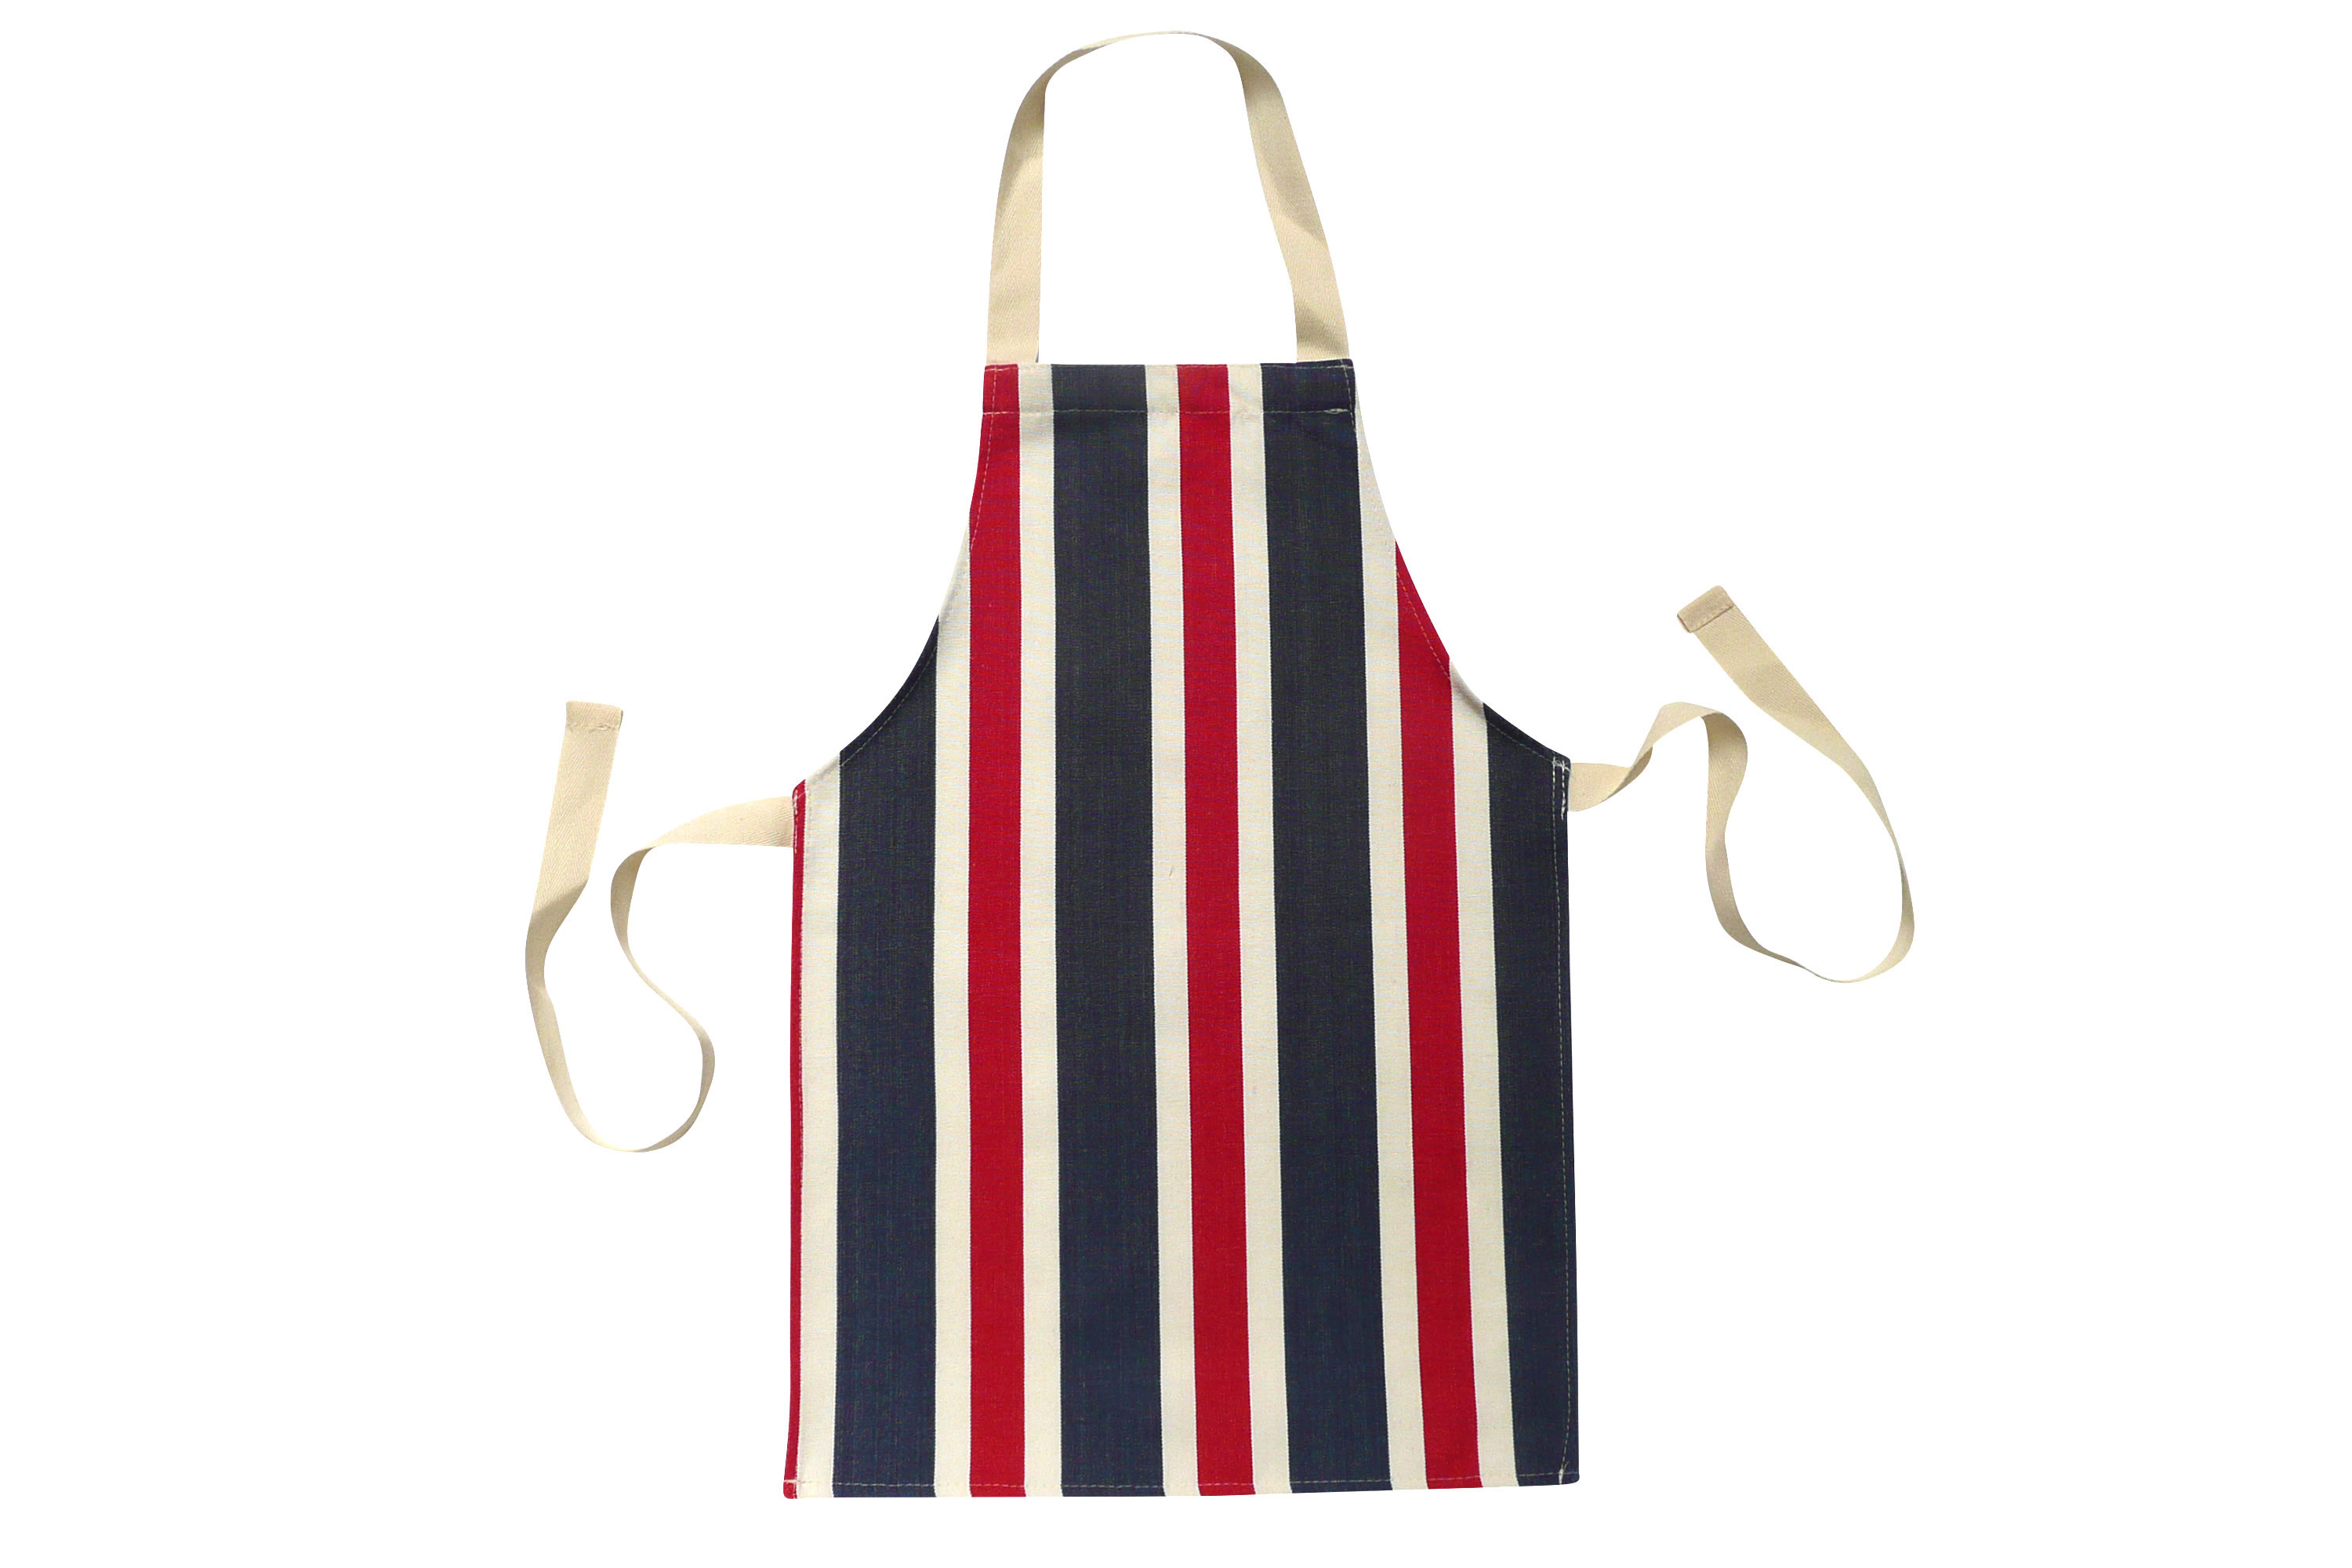 Red, White and Blue Stripe Toddlers Aprons - Striped Aprons For Small Children